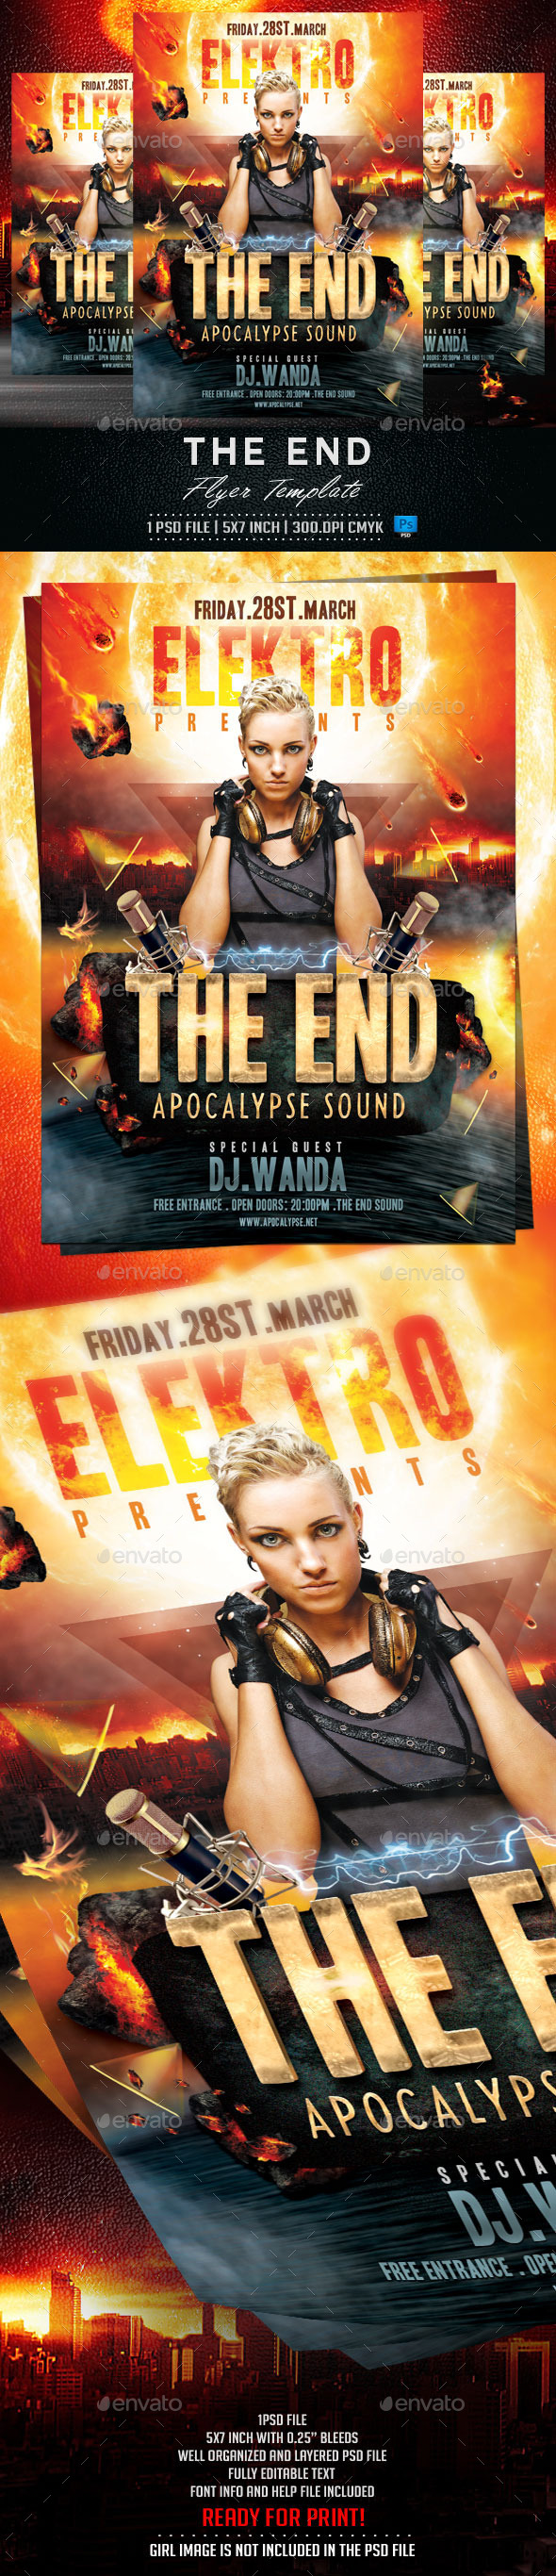 The End Flyer Template - Clubs & Parties Events